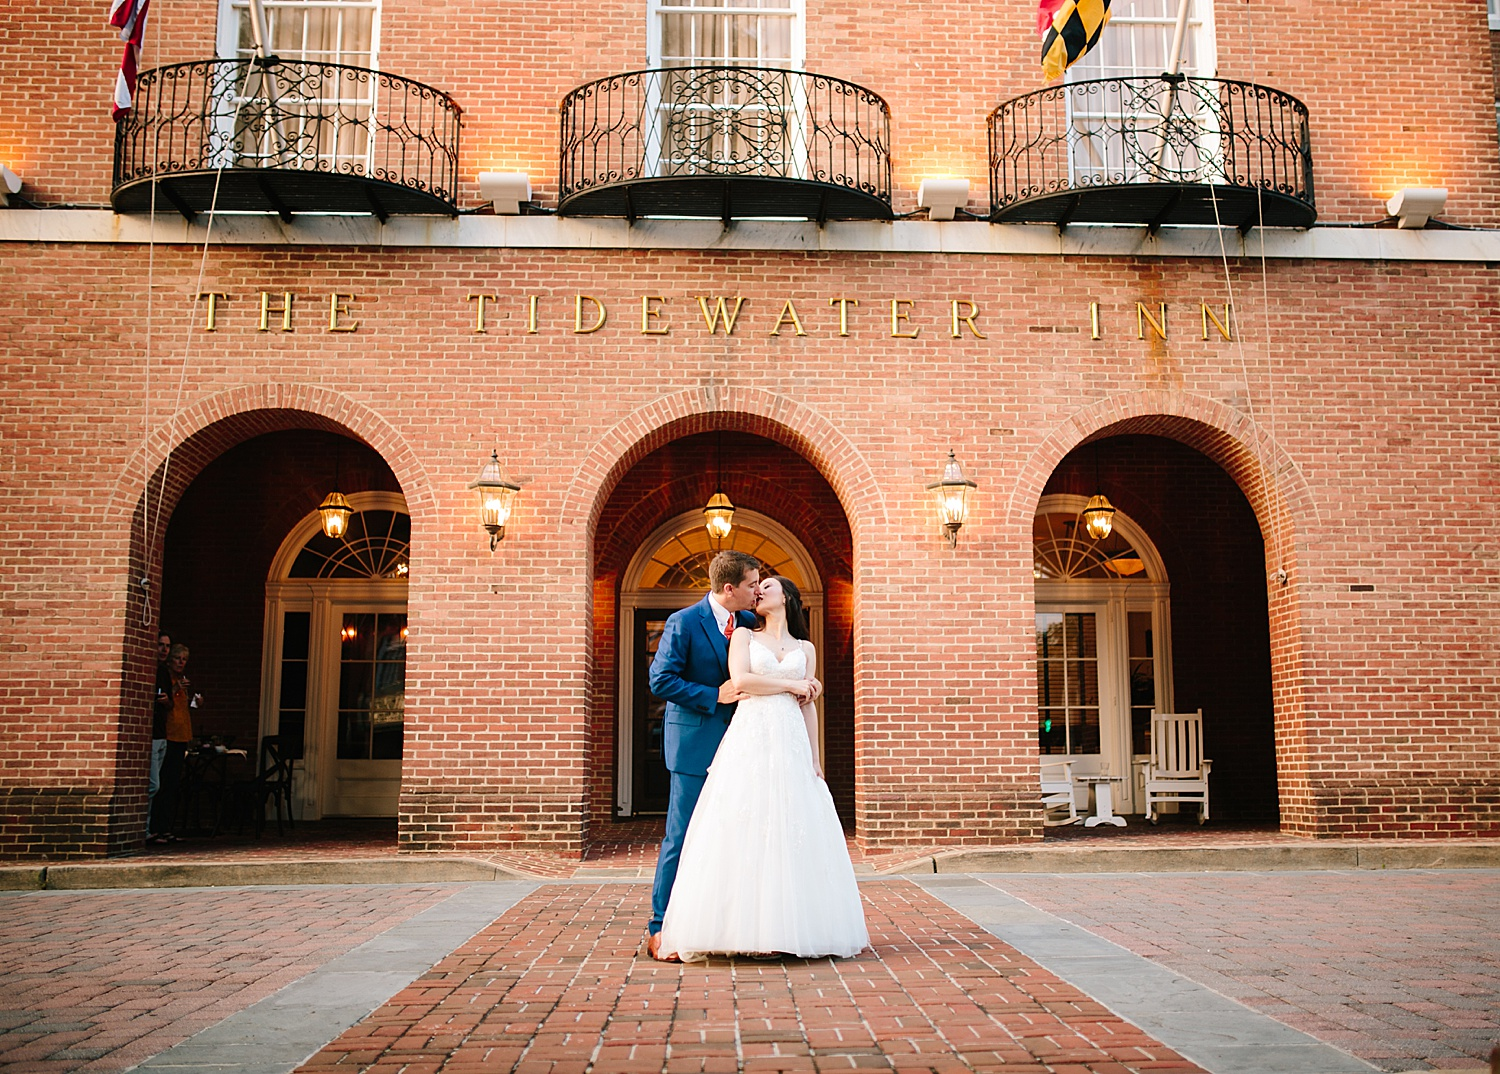 angelabruce_tidewater_inn_maryland_harrypotter_nerdy_wedding_image_077.jpg